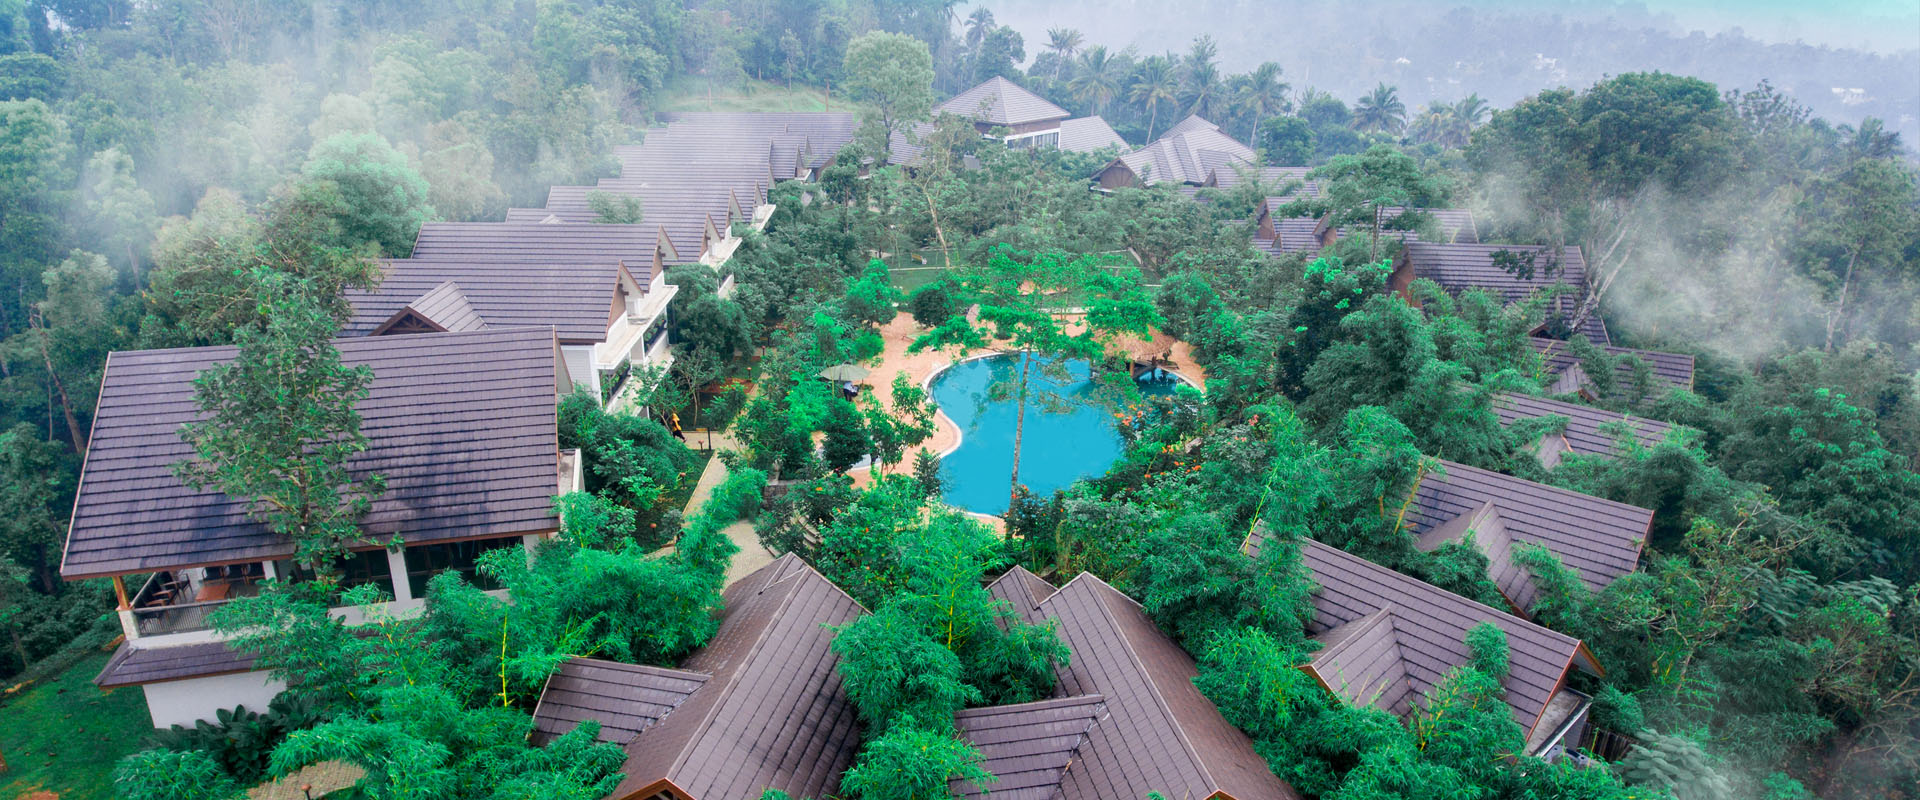 The Best Resort in Wayanad for Enjoying a True Nature Holiday.